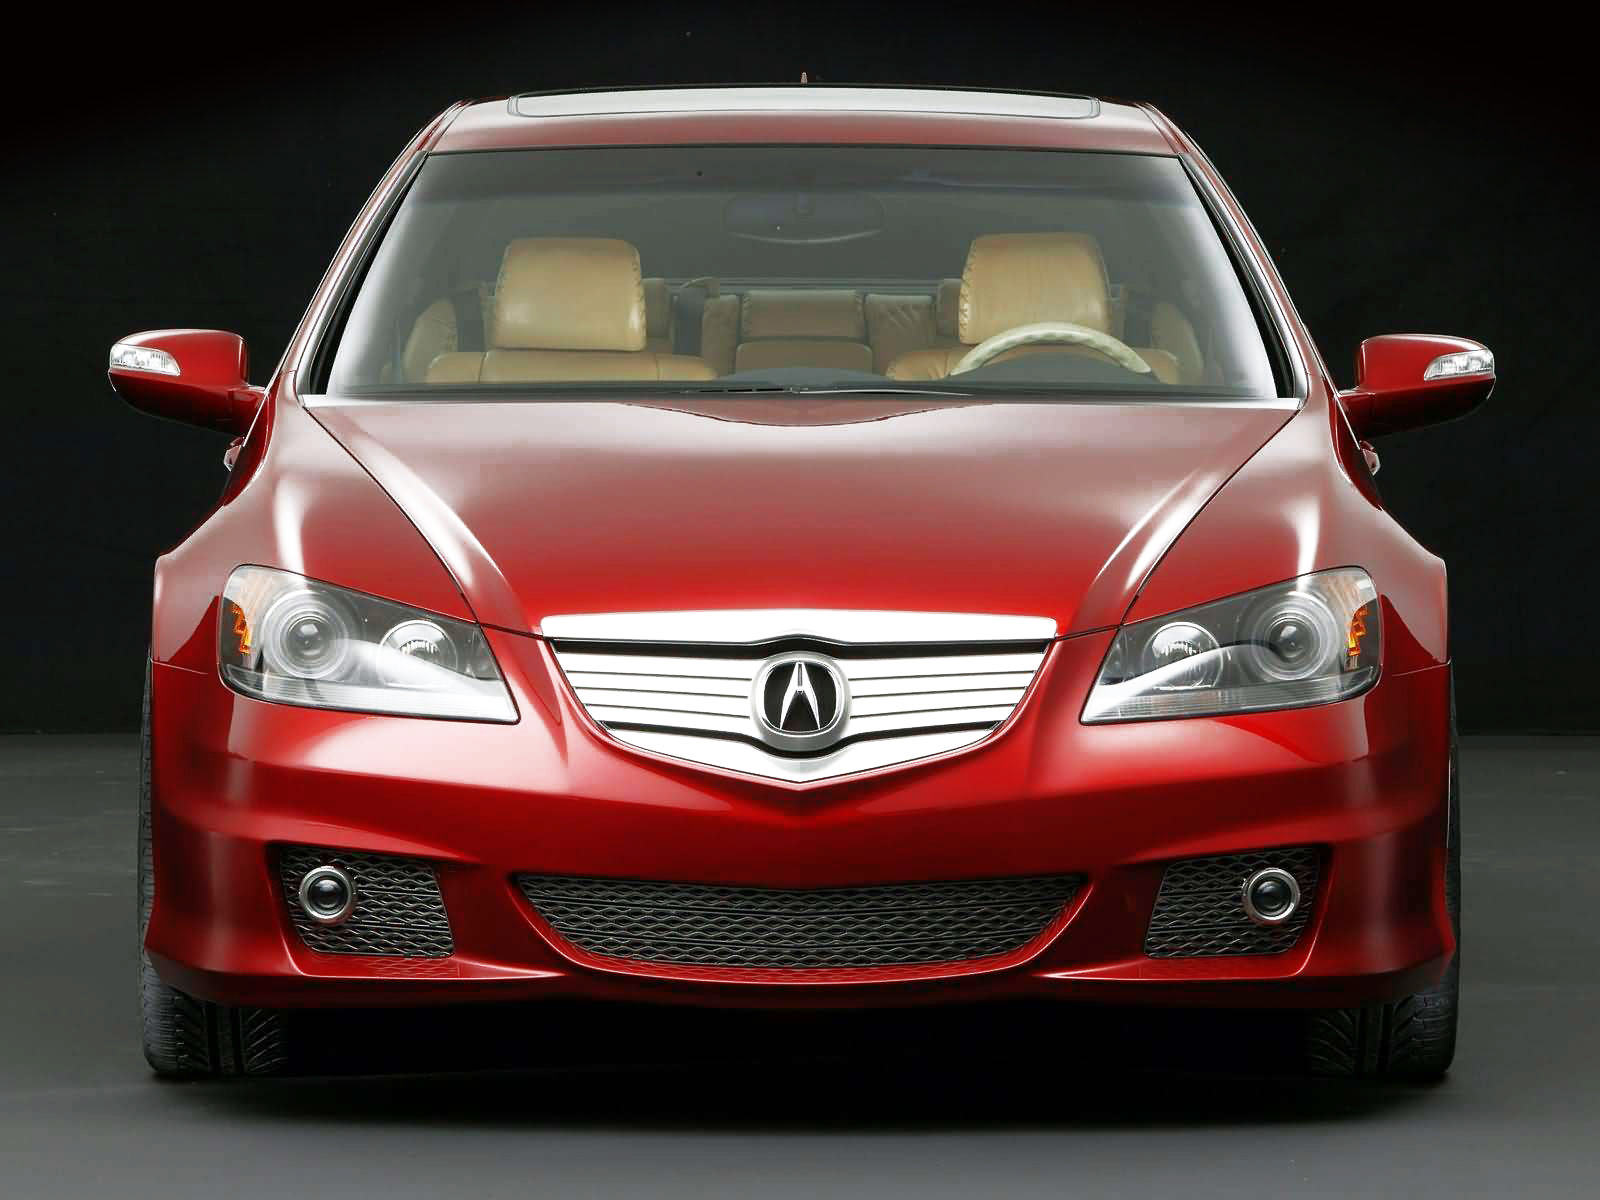 ACURA RL ASPEC Concept Car Pictures Wallpapers - 2005 acura rl engine